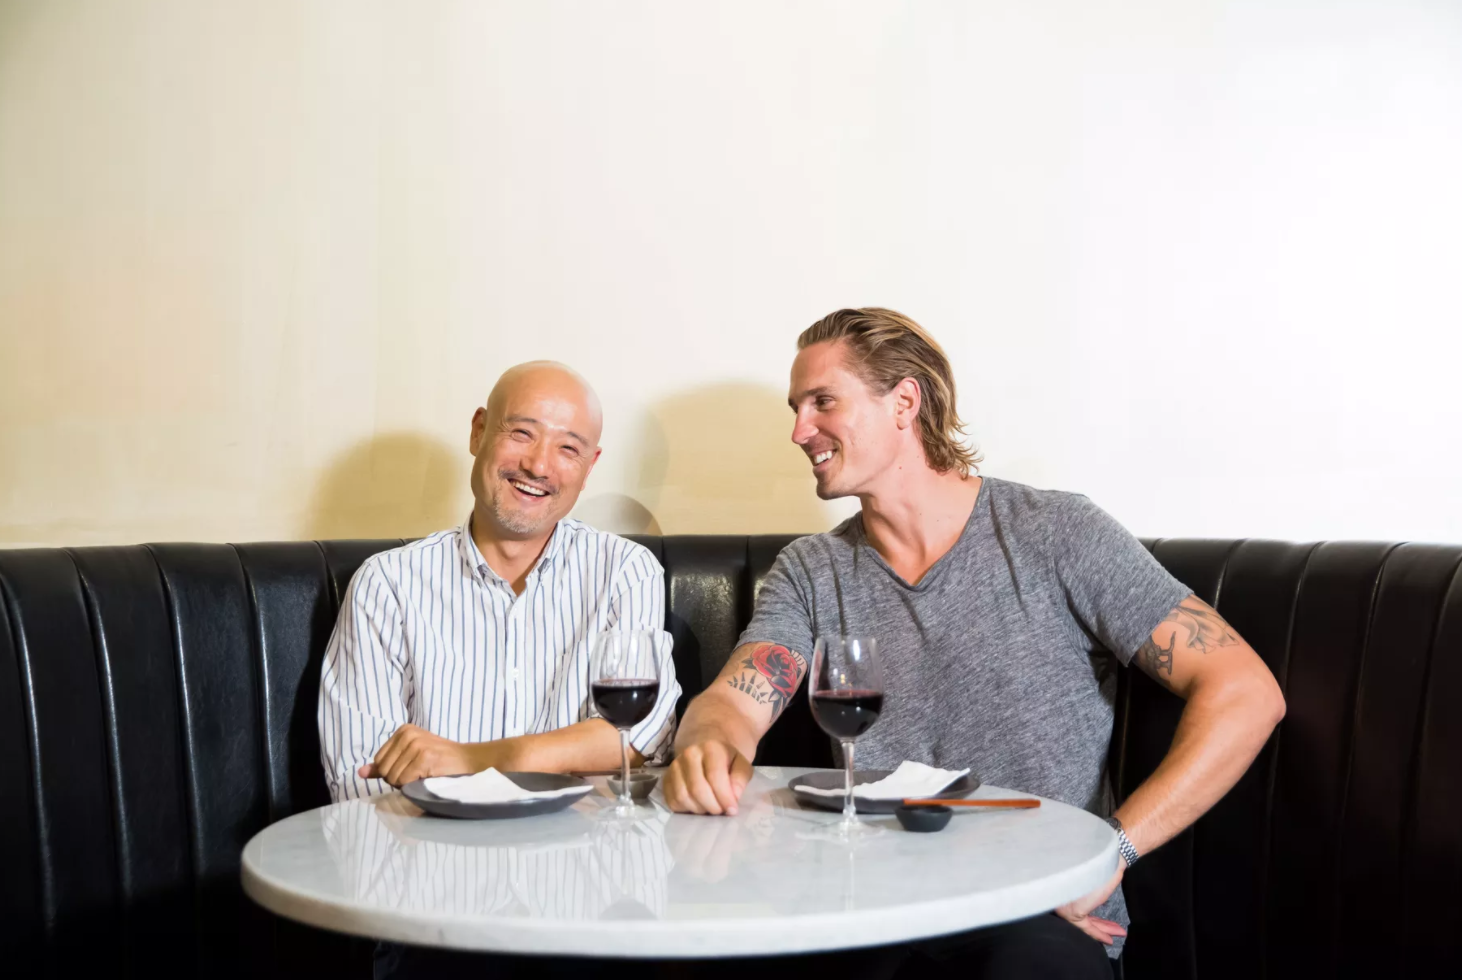 Jeff Lam and Eddy Buckingham, owners of Chinese Tuxedo and the Tyger. Photo by Emma Cleary.